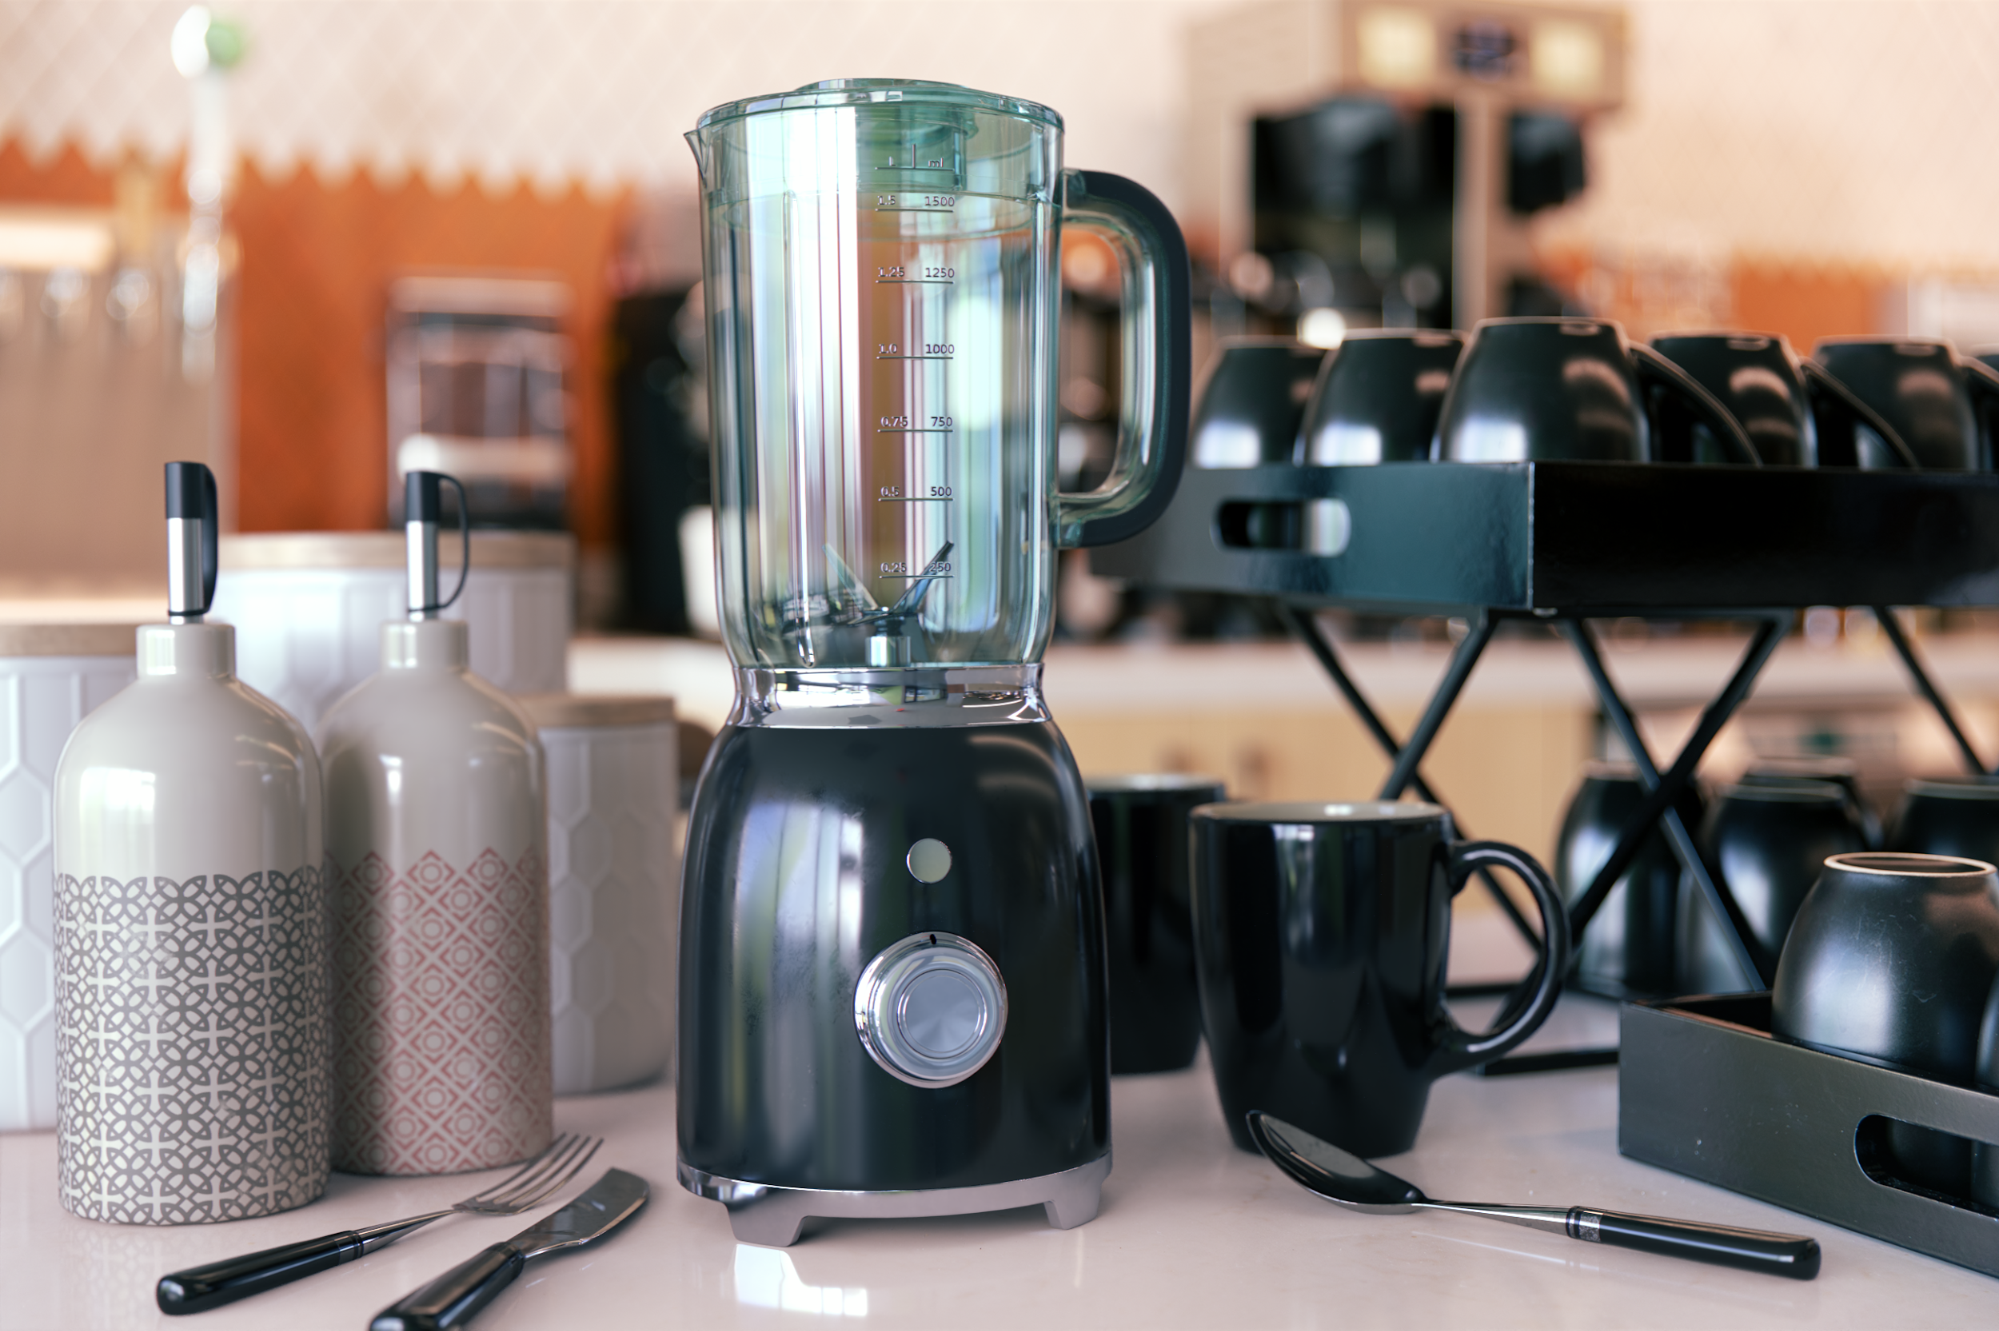 Photorealistic virtual photograph of 3D appliances composited into a kitchen counter top scene